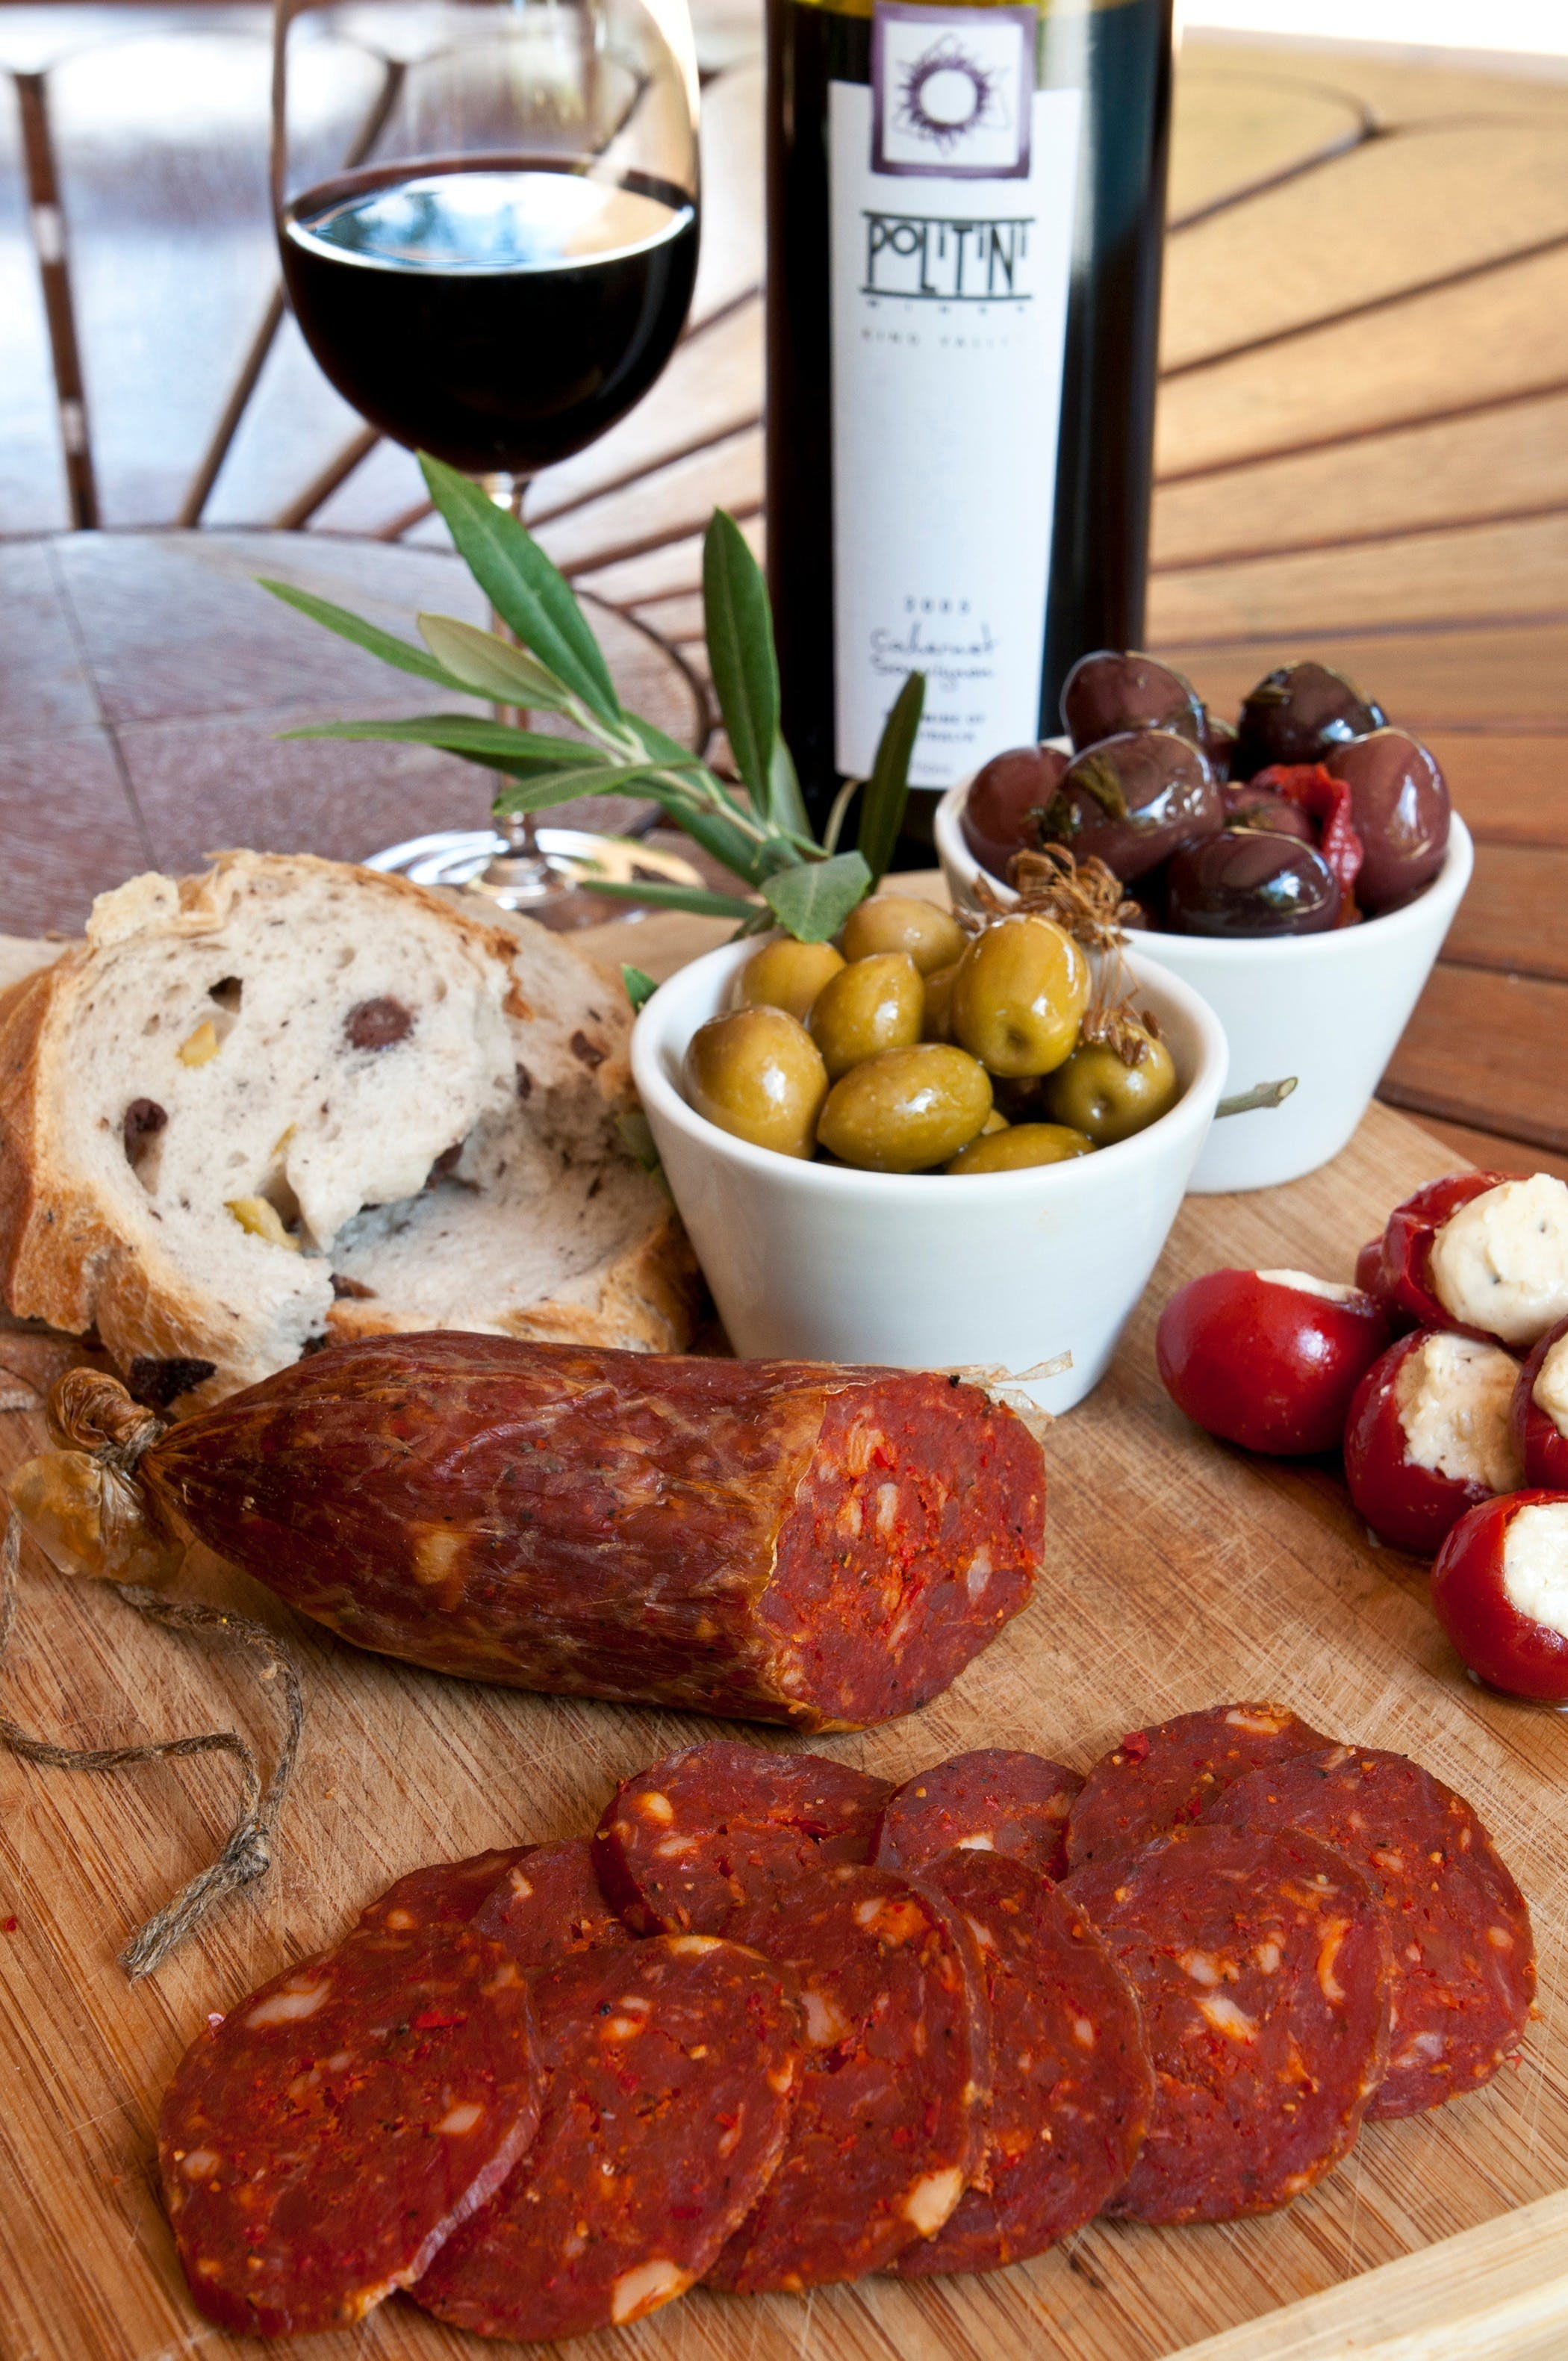 Salami and Salsicce Making classes at Politini Wines - Accommodation Search